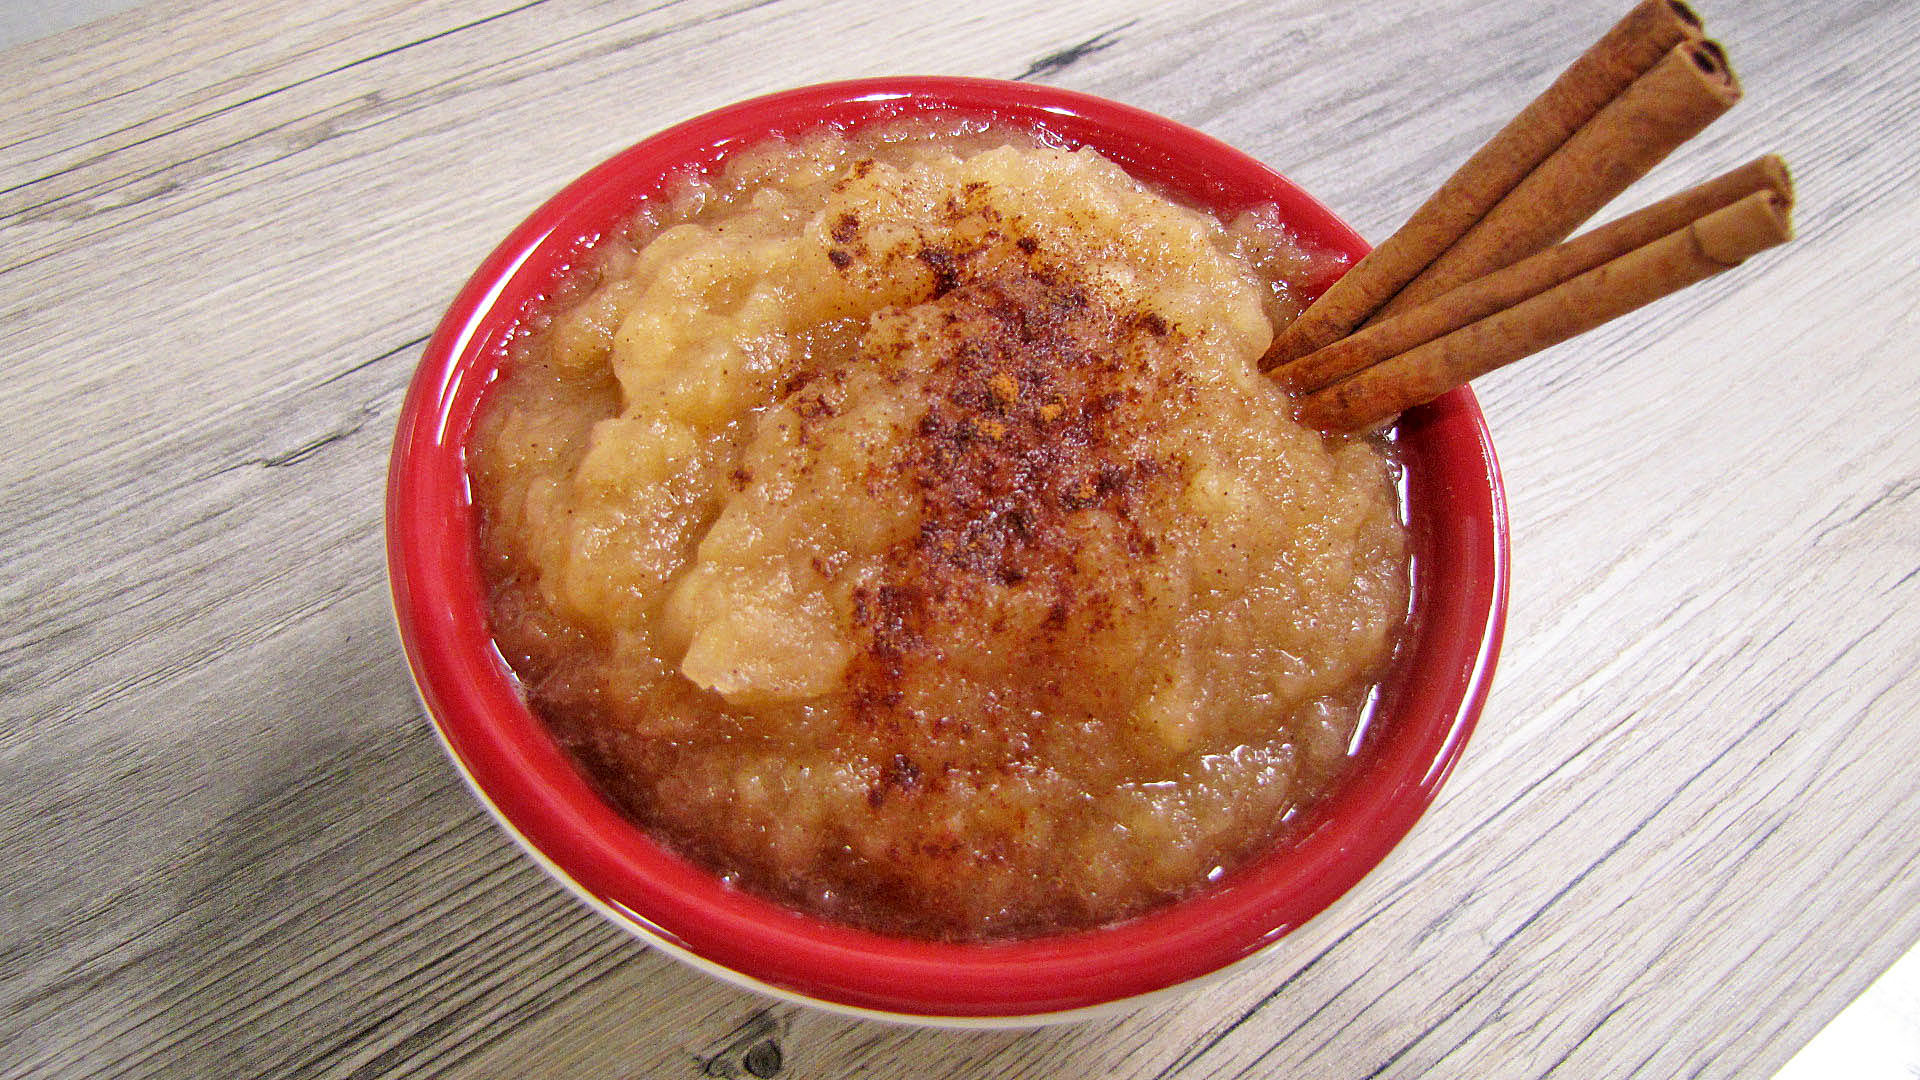 This recipe will help you get some apples on your menu. (NDSU photo)